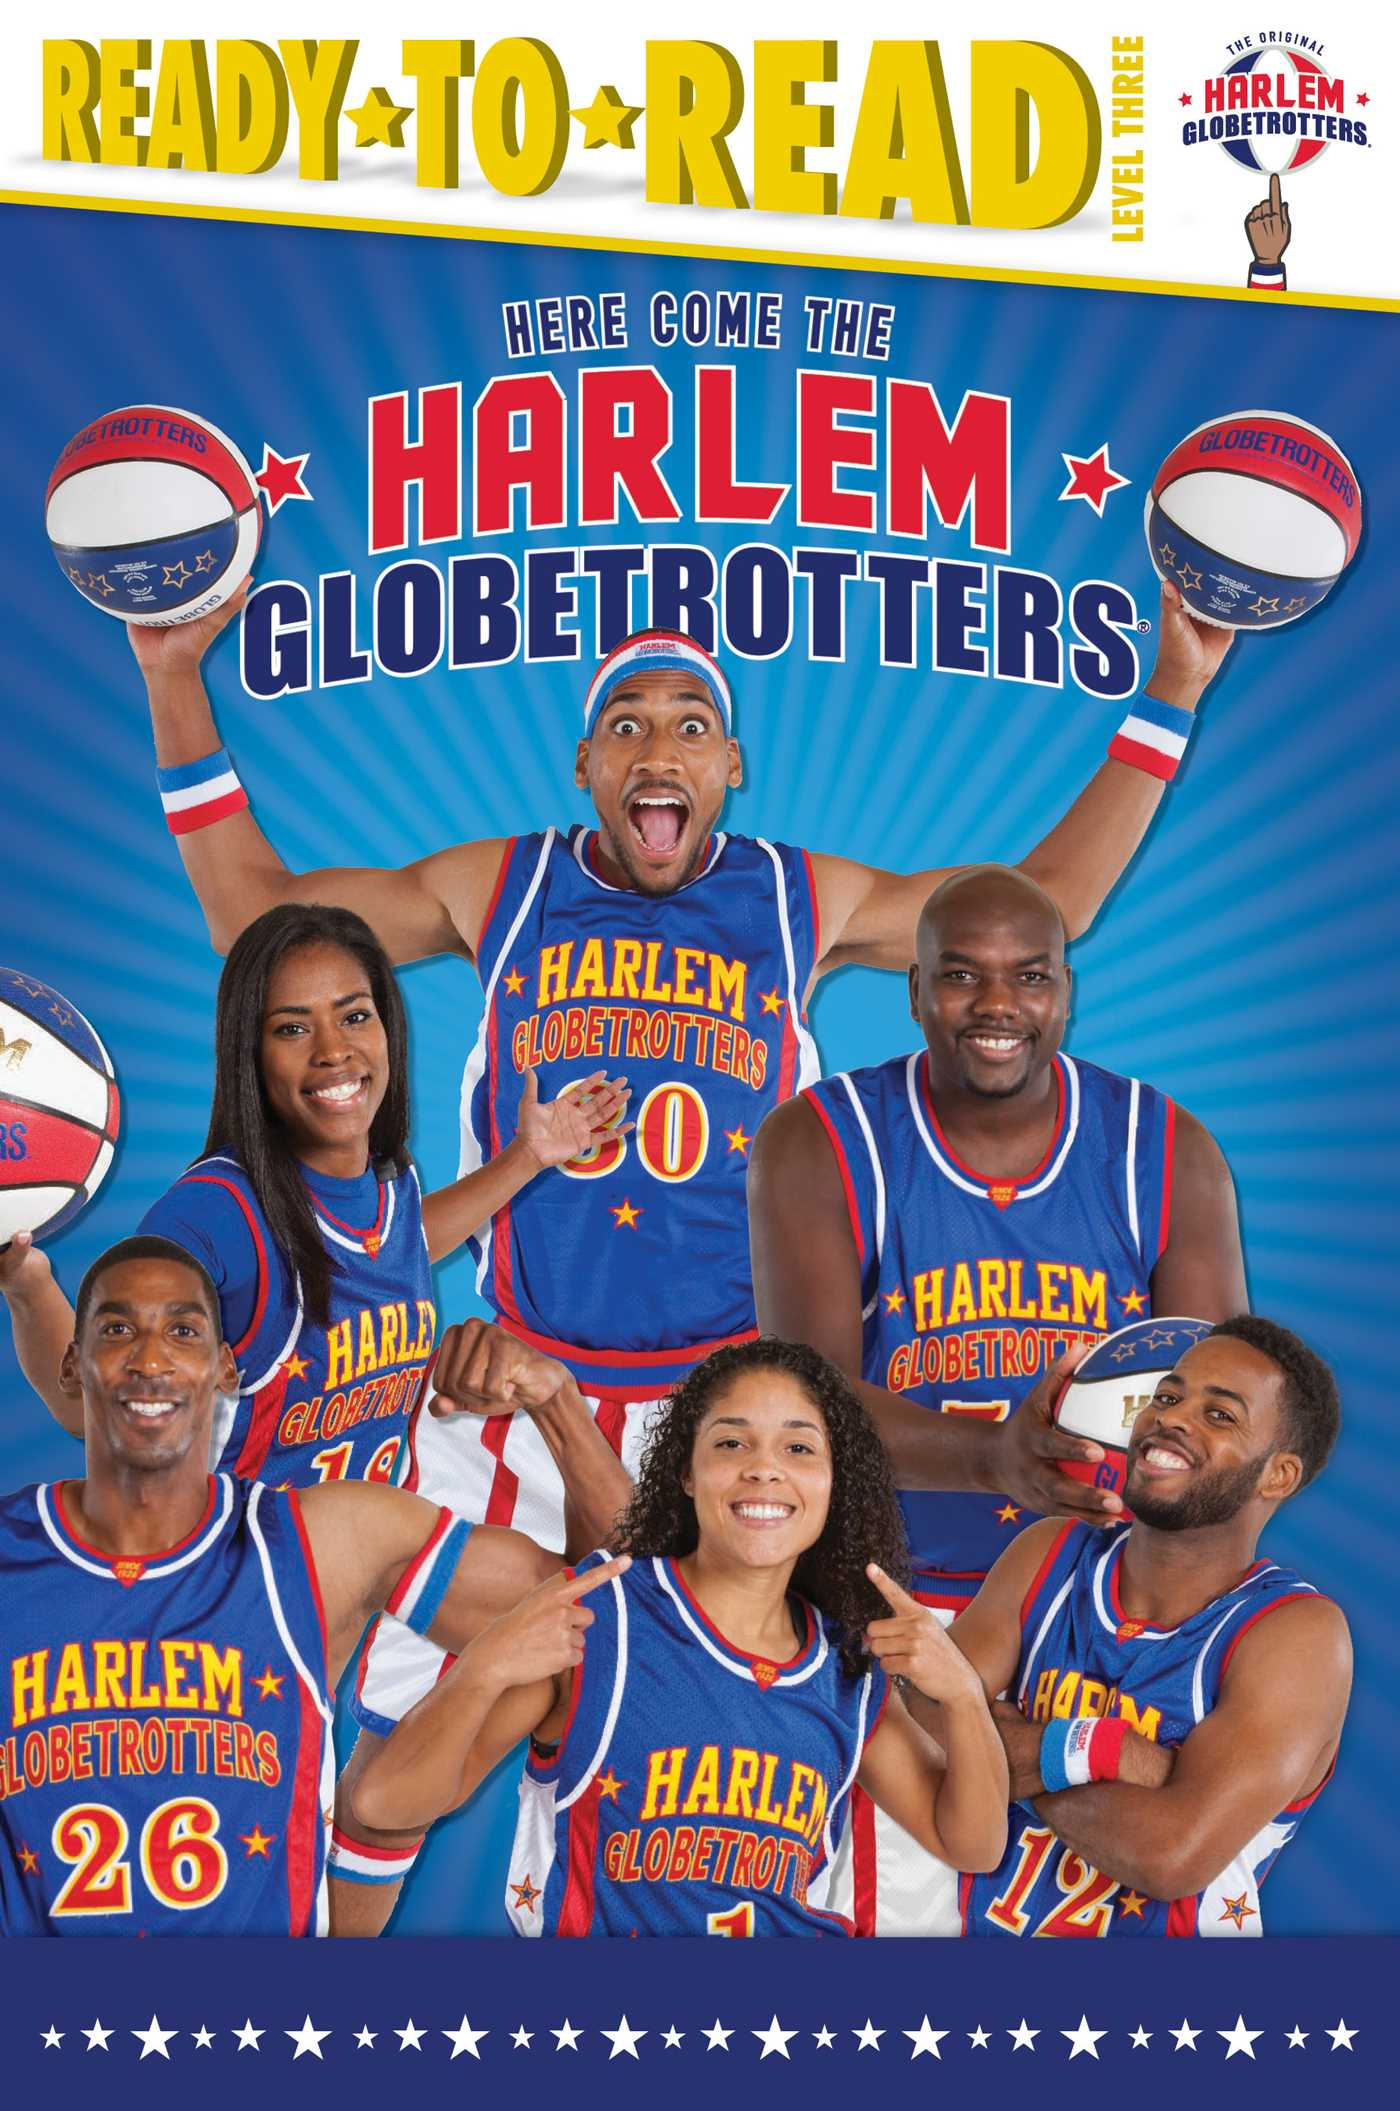 Here come the harlem globetrotters 9781481487467 hr